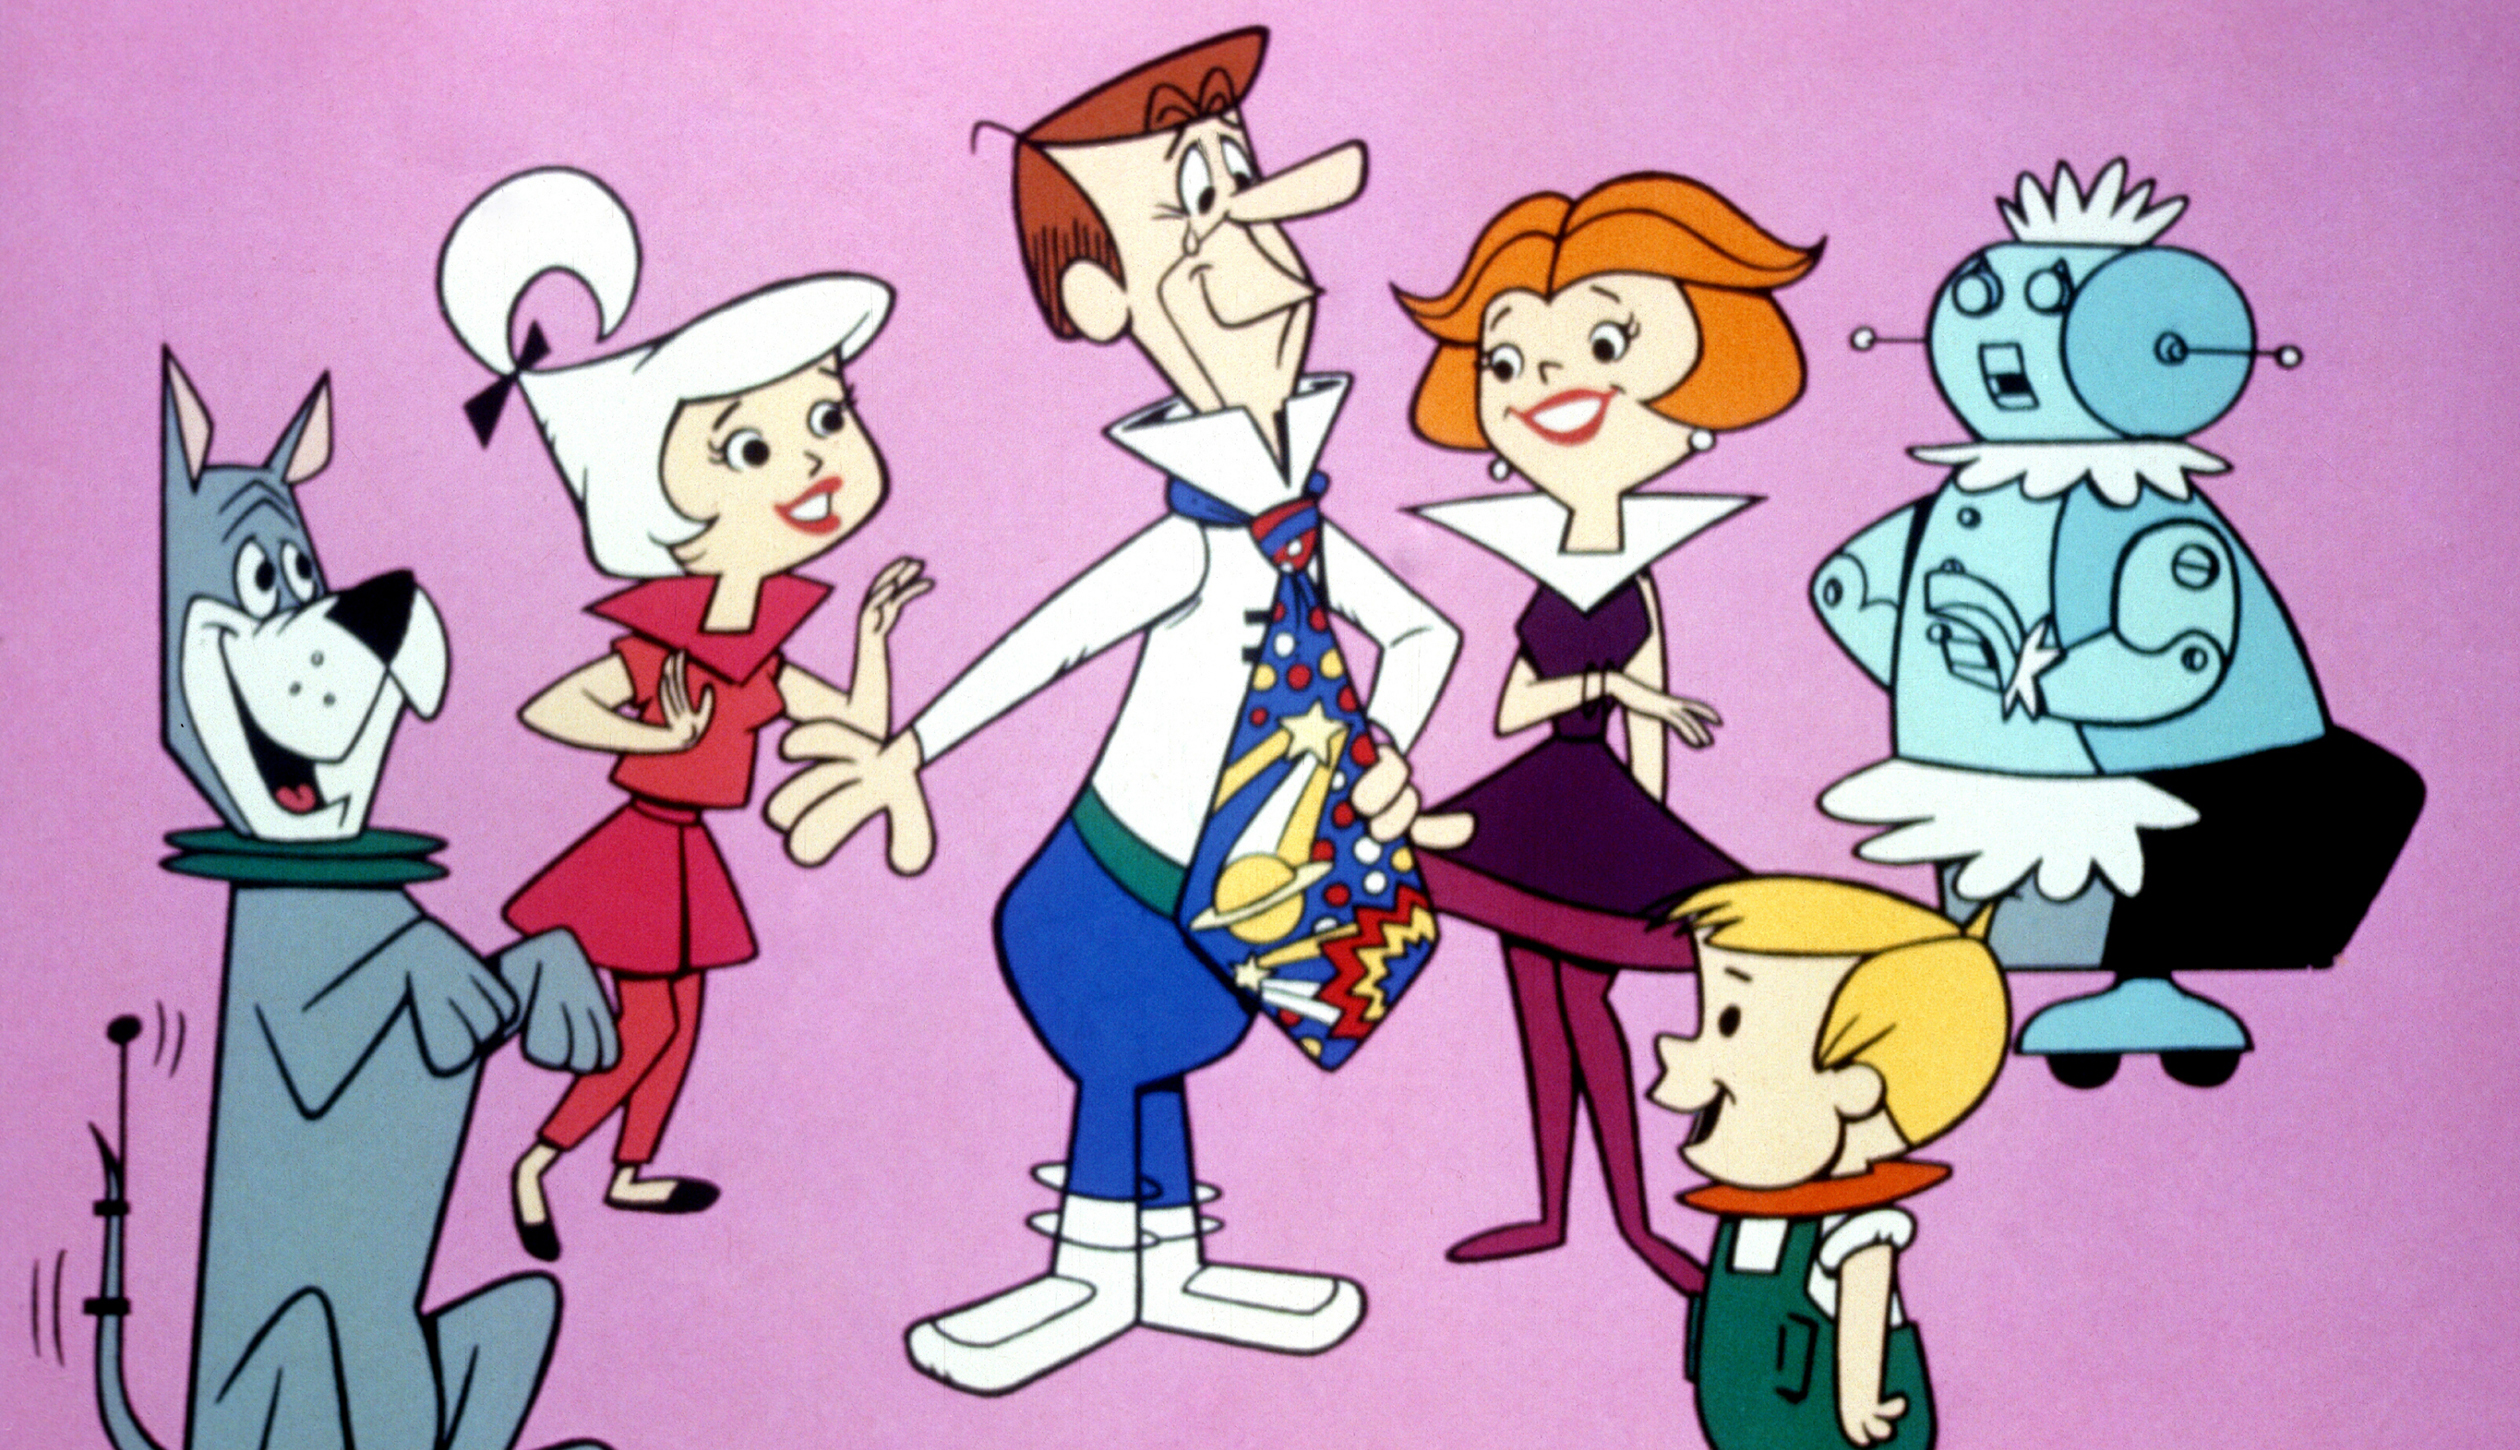 The Jetsons (Syndicated) 1962 - 1988Shown from left: Astro, Judy Jetson, George Jetson, Jane Jetson, Elroy Jetson, Rosie the Robot